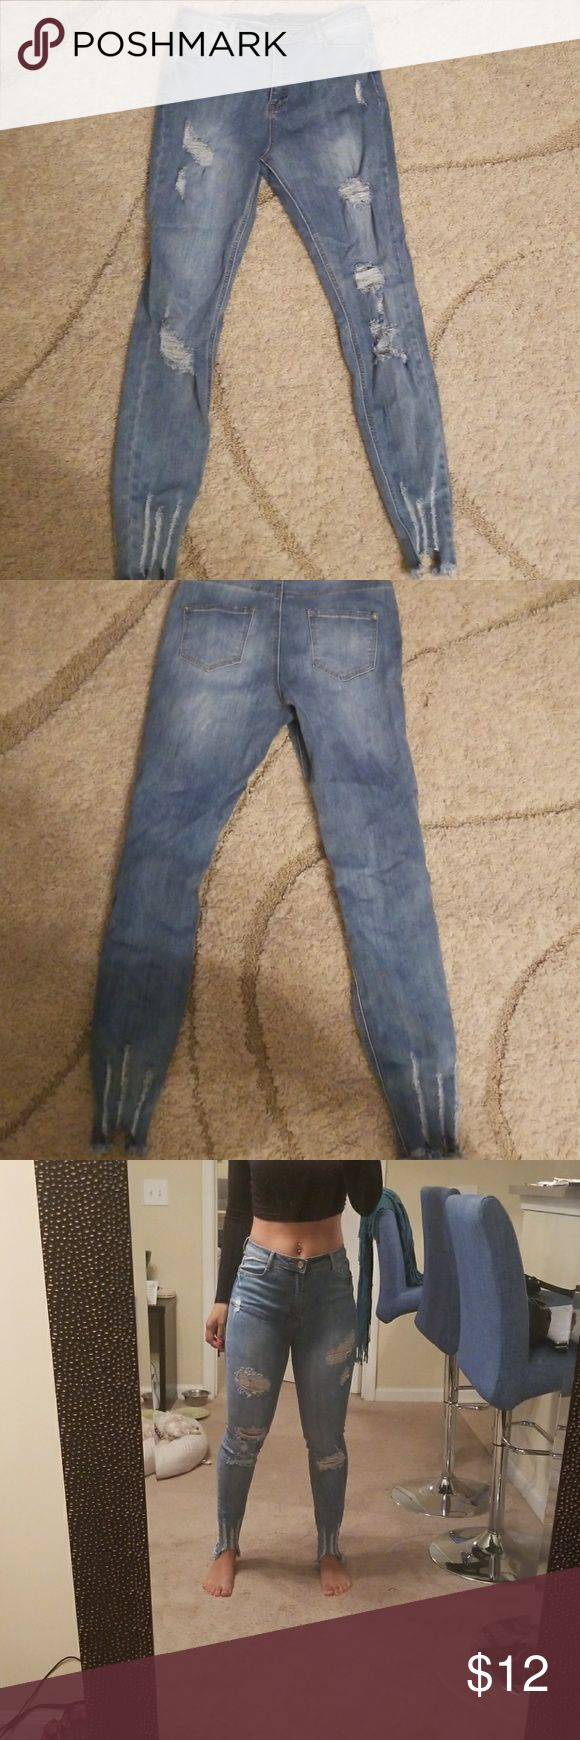 Misguided distressed skinny jeans Never worn out skinnies. Has stretch so they're definitely comfortable. No tags, I meant to keep them and just never wore them. Missguided Jeans Skinny